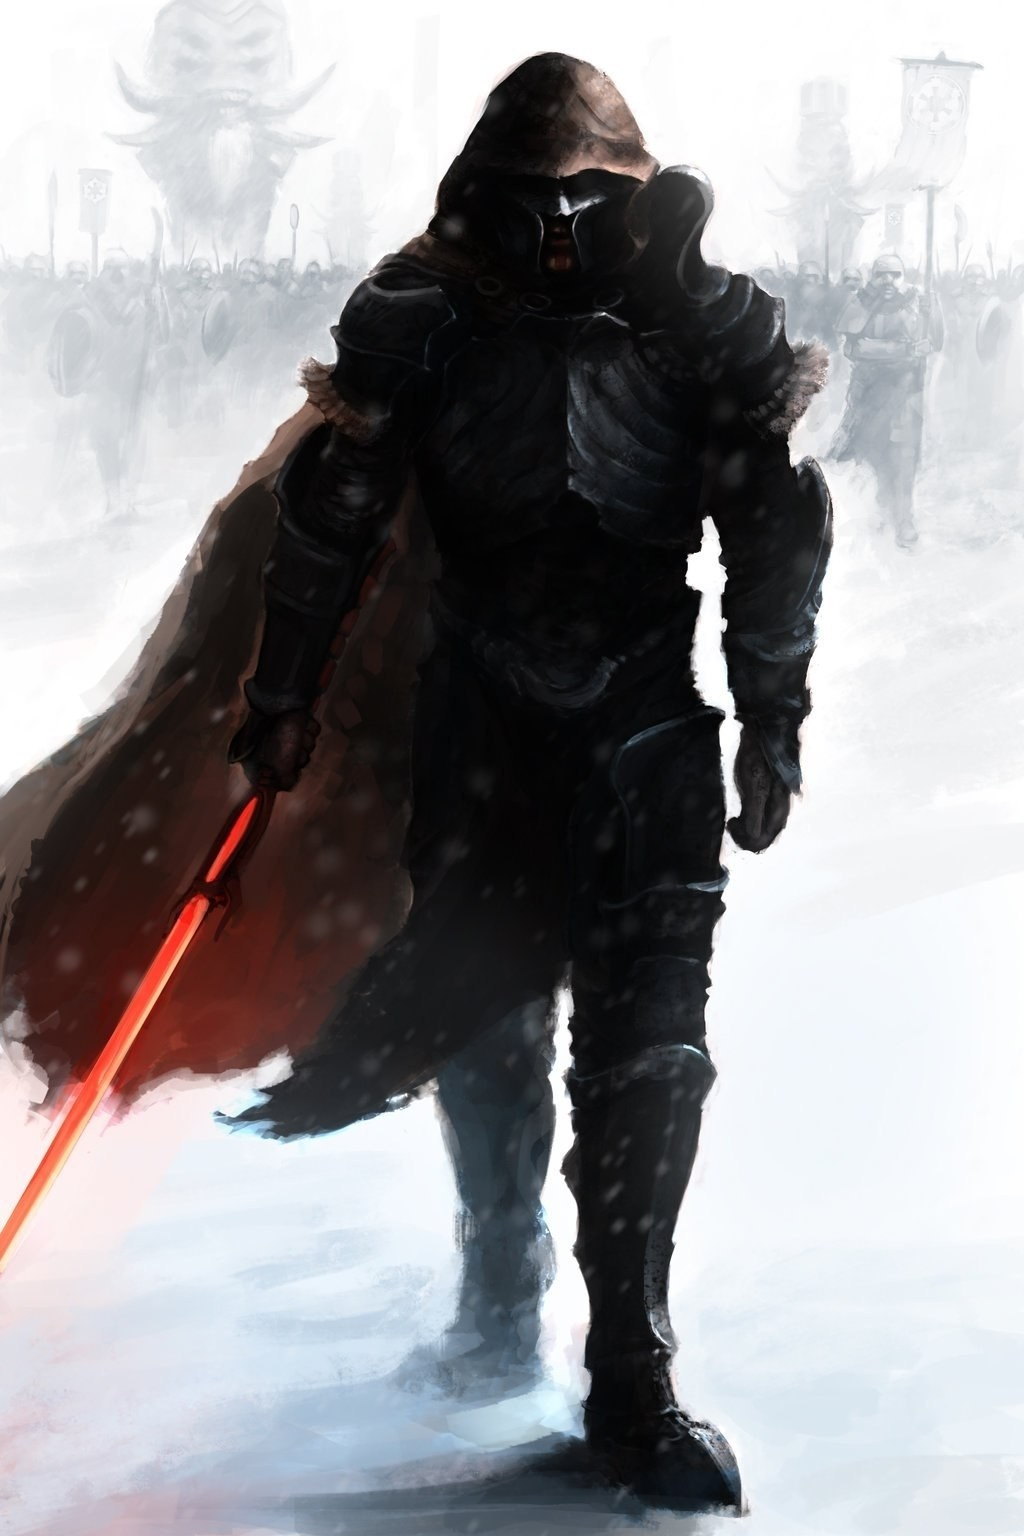 General 1024x1536 lightsaber artwork futuristic